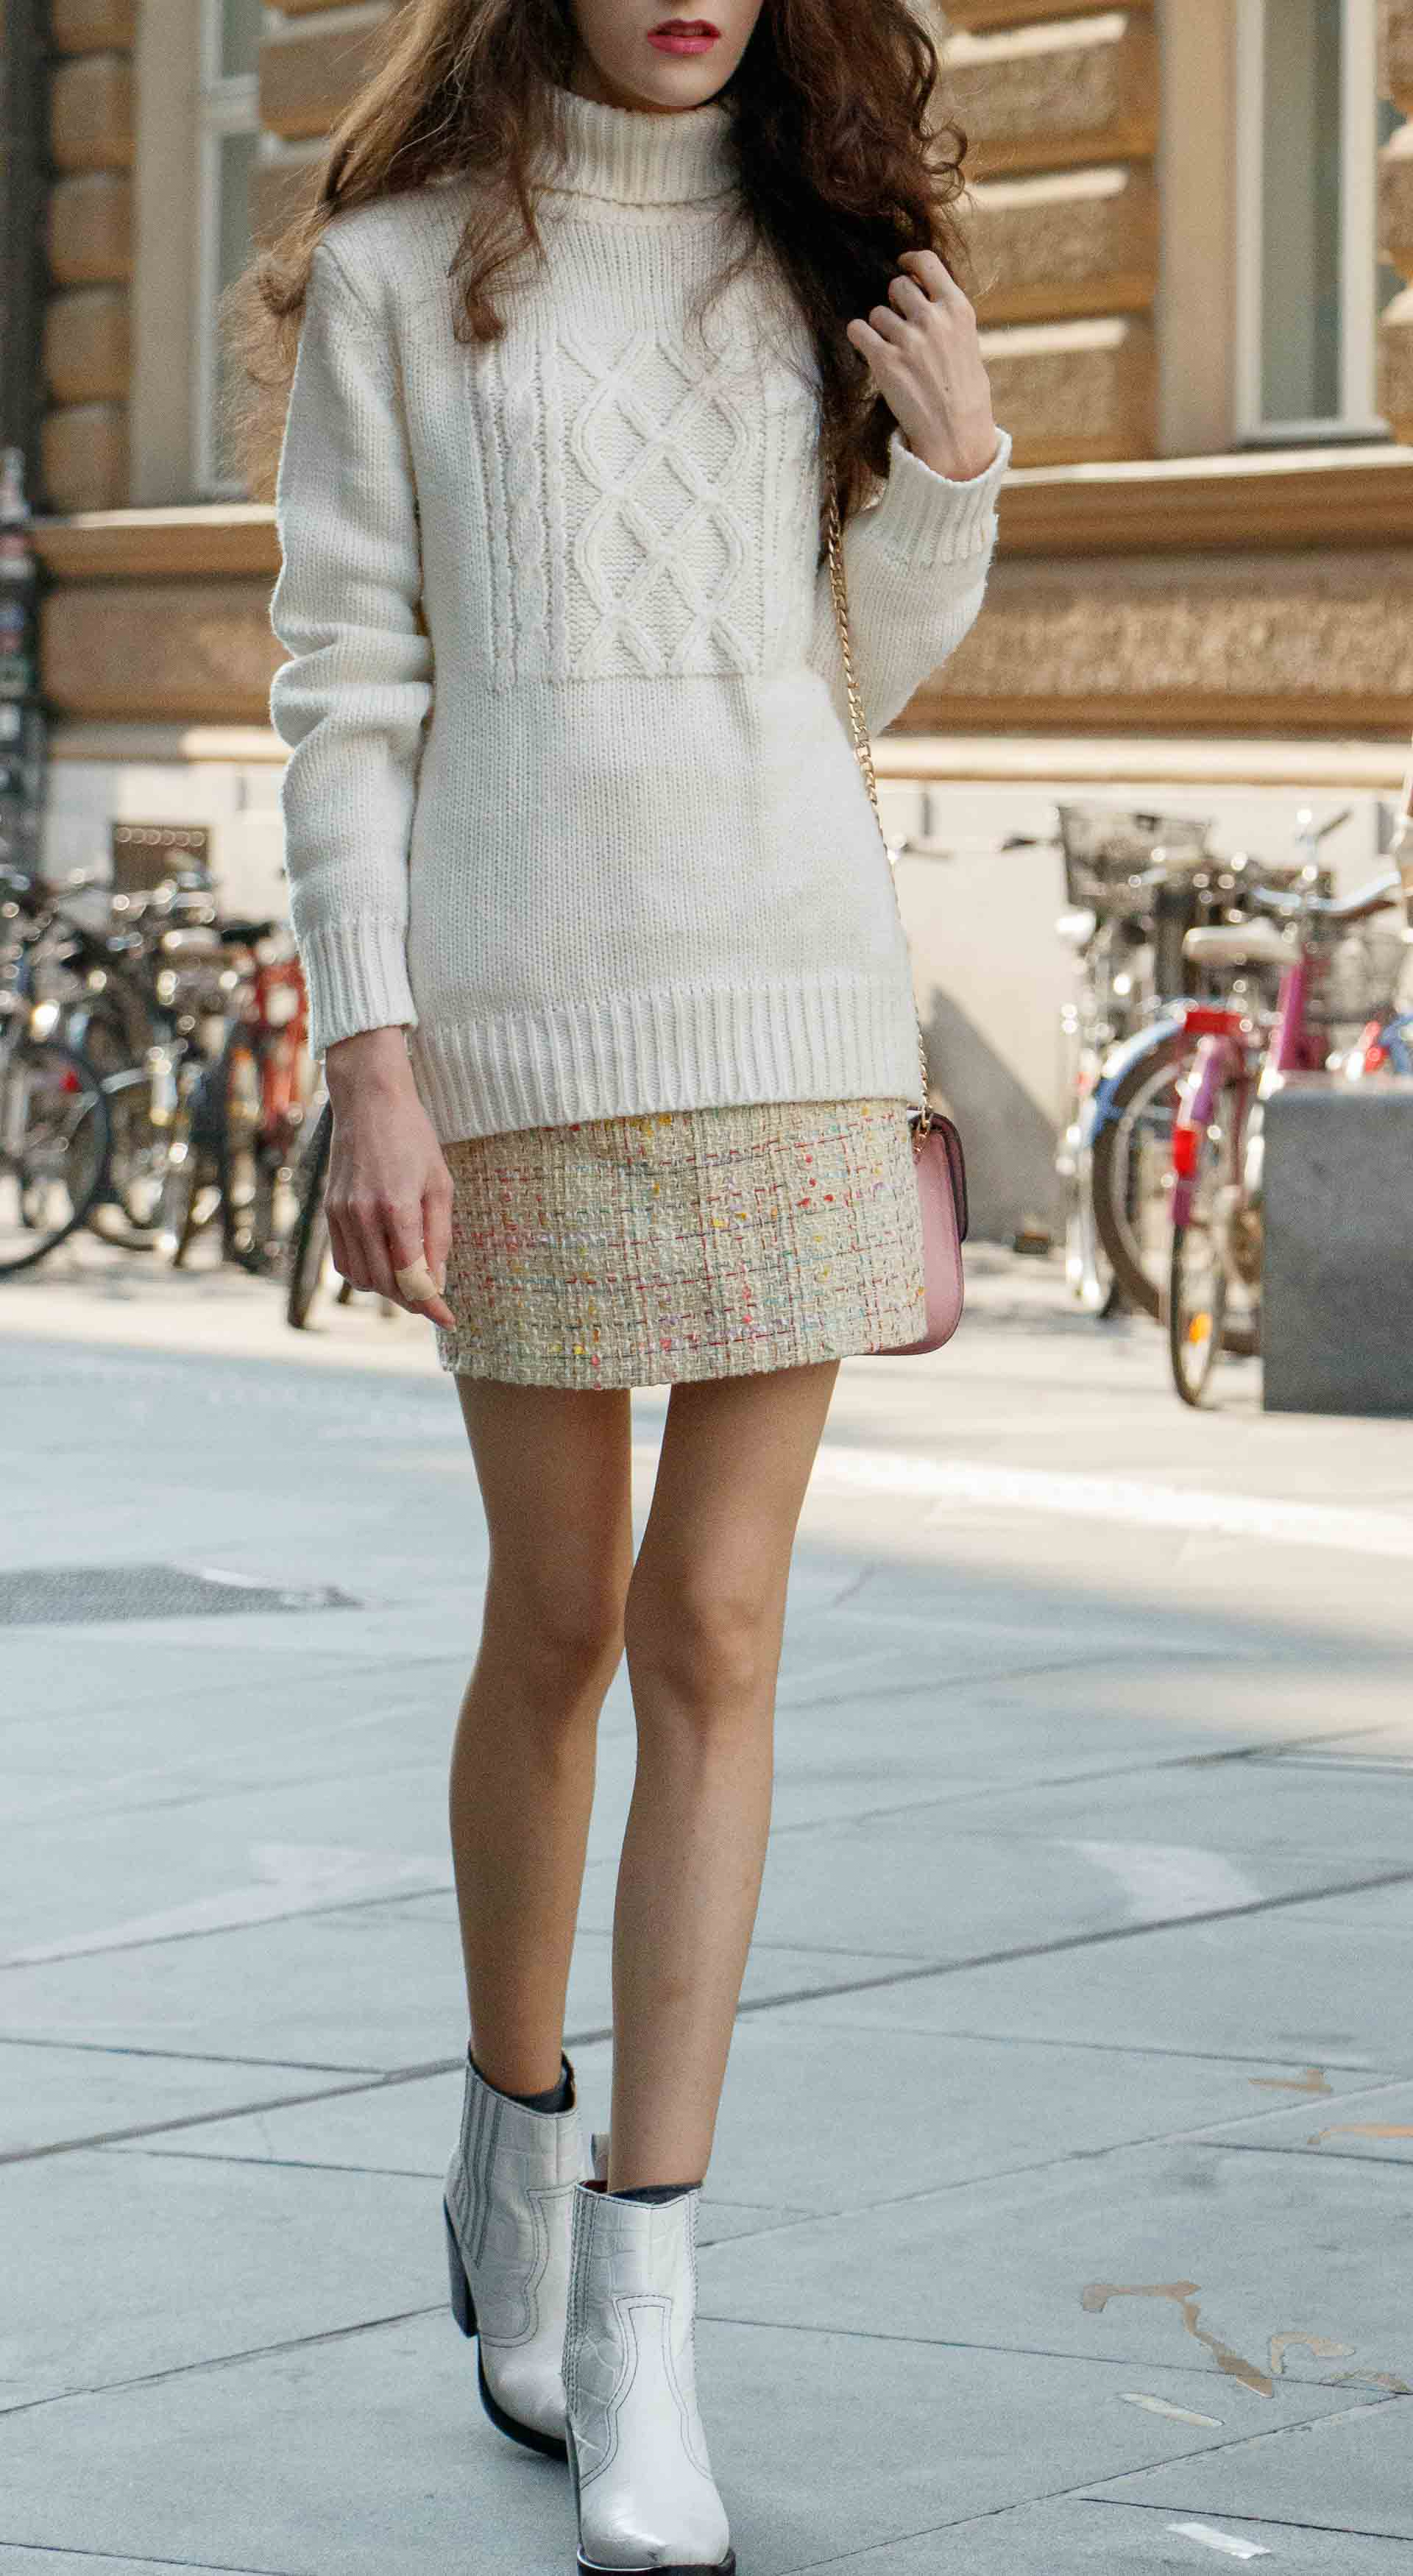 Beautiful Slovenian Fashion Blogger Veronika Lipar of Brunette from Wall dressed in white Ganni Western boots, yellow tweed skirt, white turtleneck sweater, chain strap shoulder bag walking on the street in the morning in Ljubljana in fall